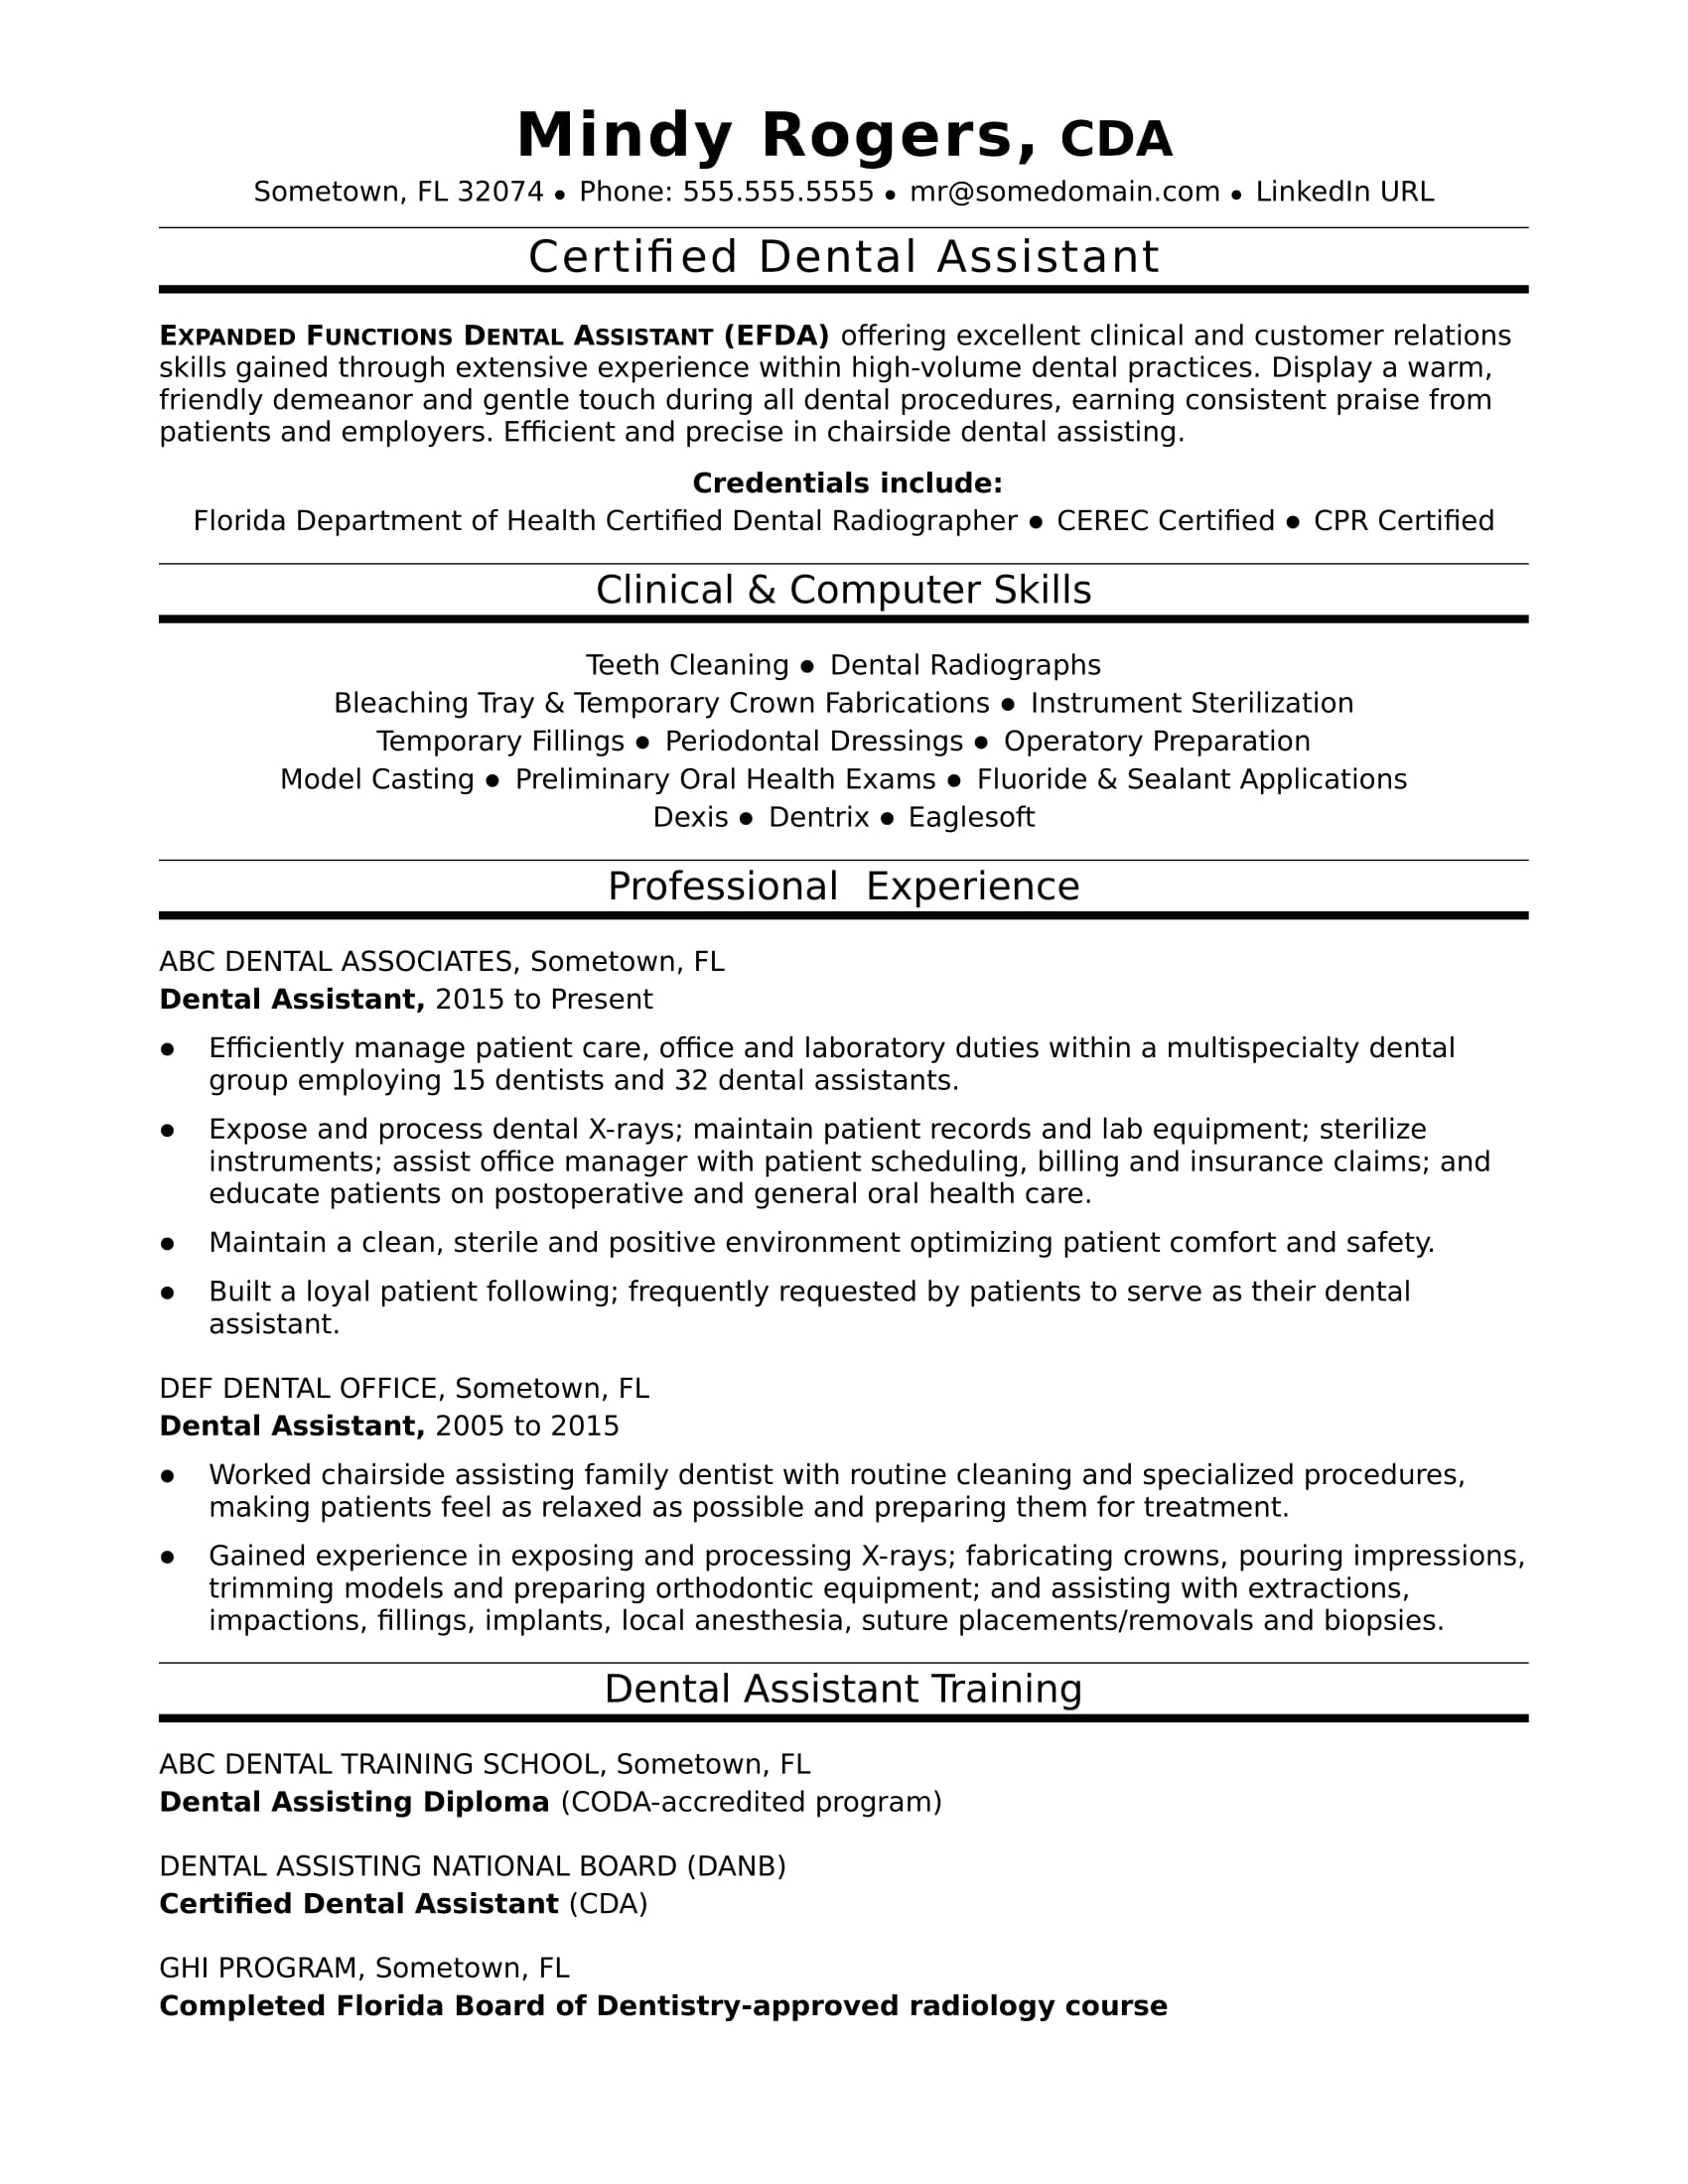 dental assistant resume sample monster school application examples emailing your for job Resume Dental School Application Resume Examples